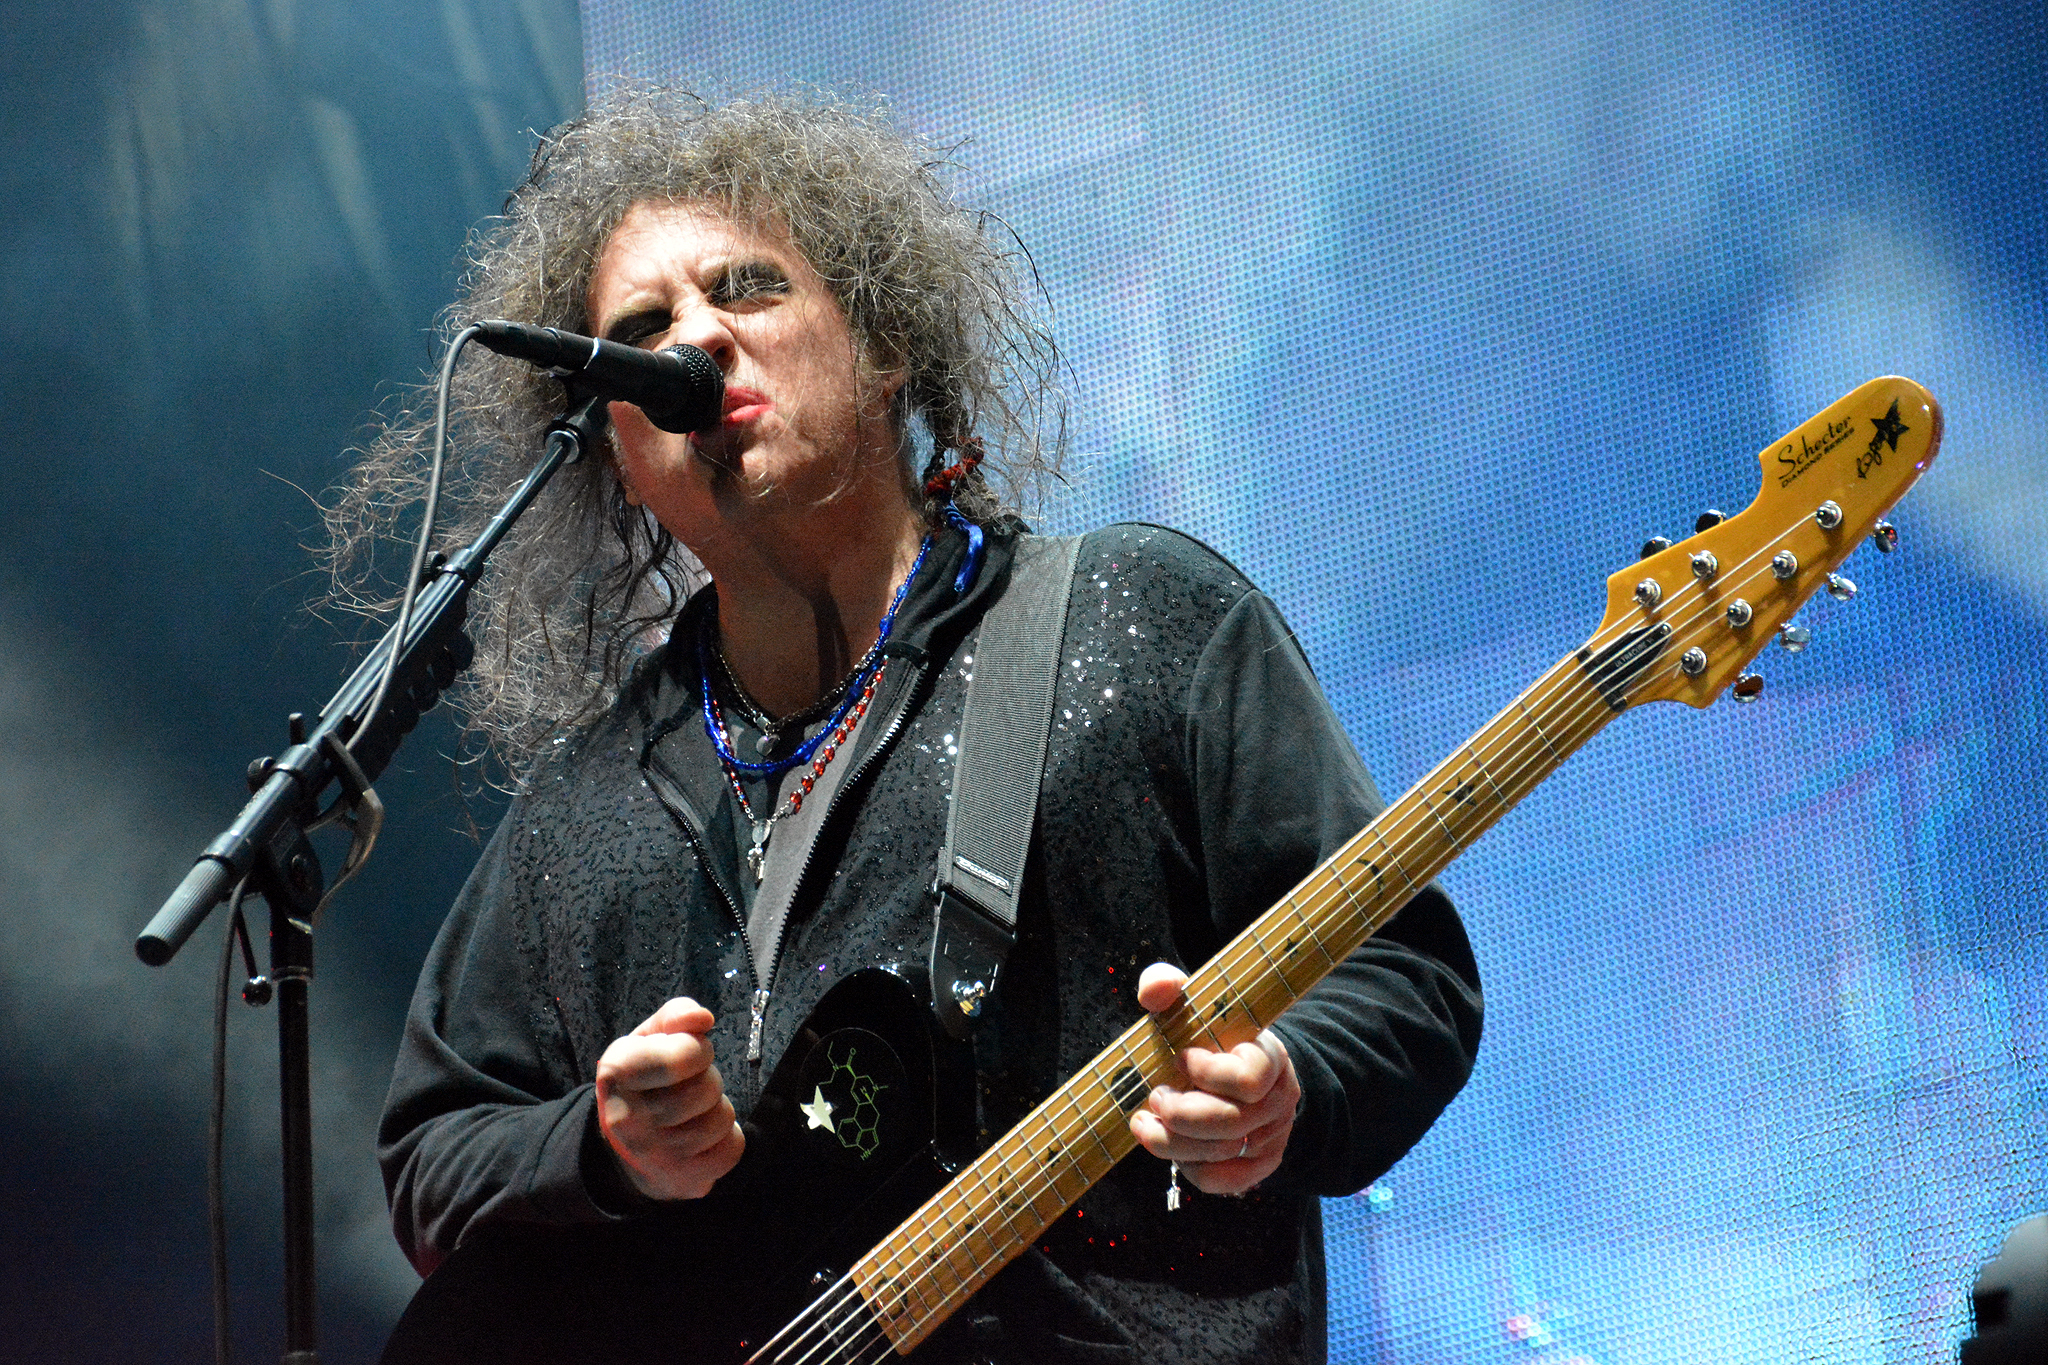 The Cure performs at the 2013 Austin City Limits Music Festival on October 5, 2013.